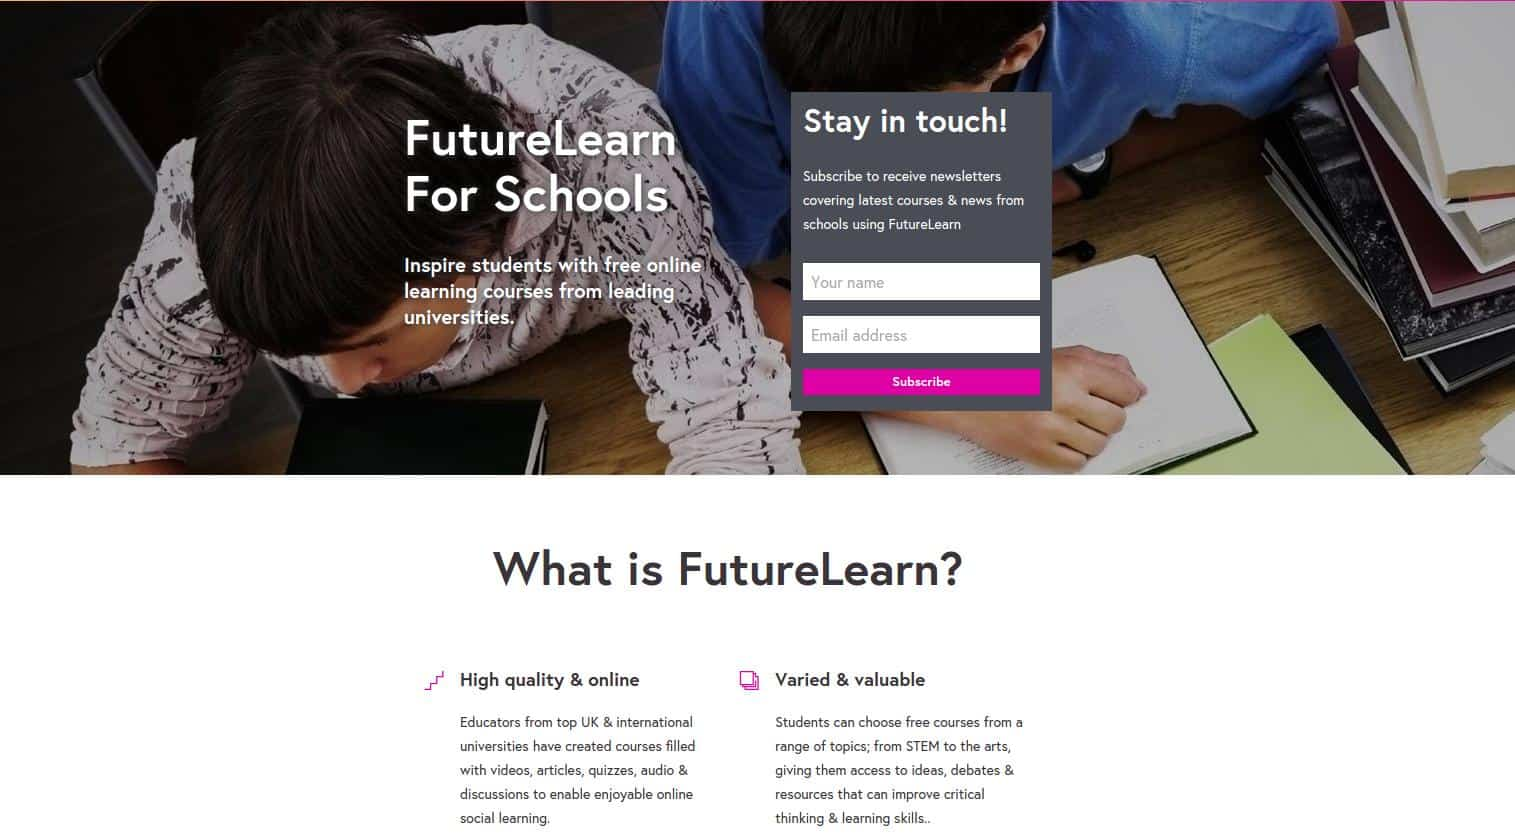 FutureLearn for Schools